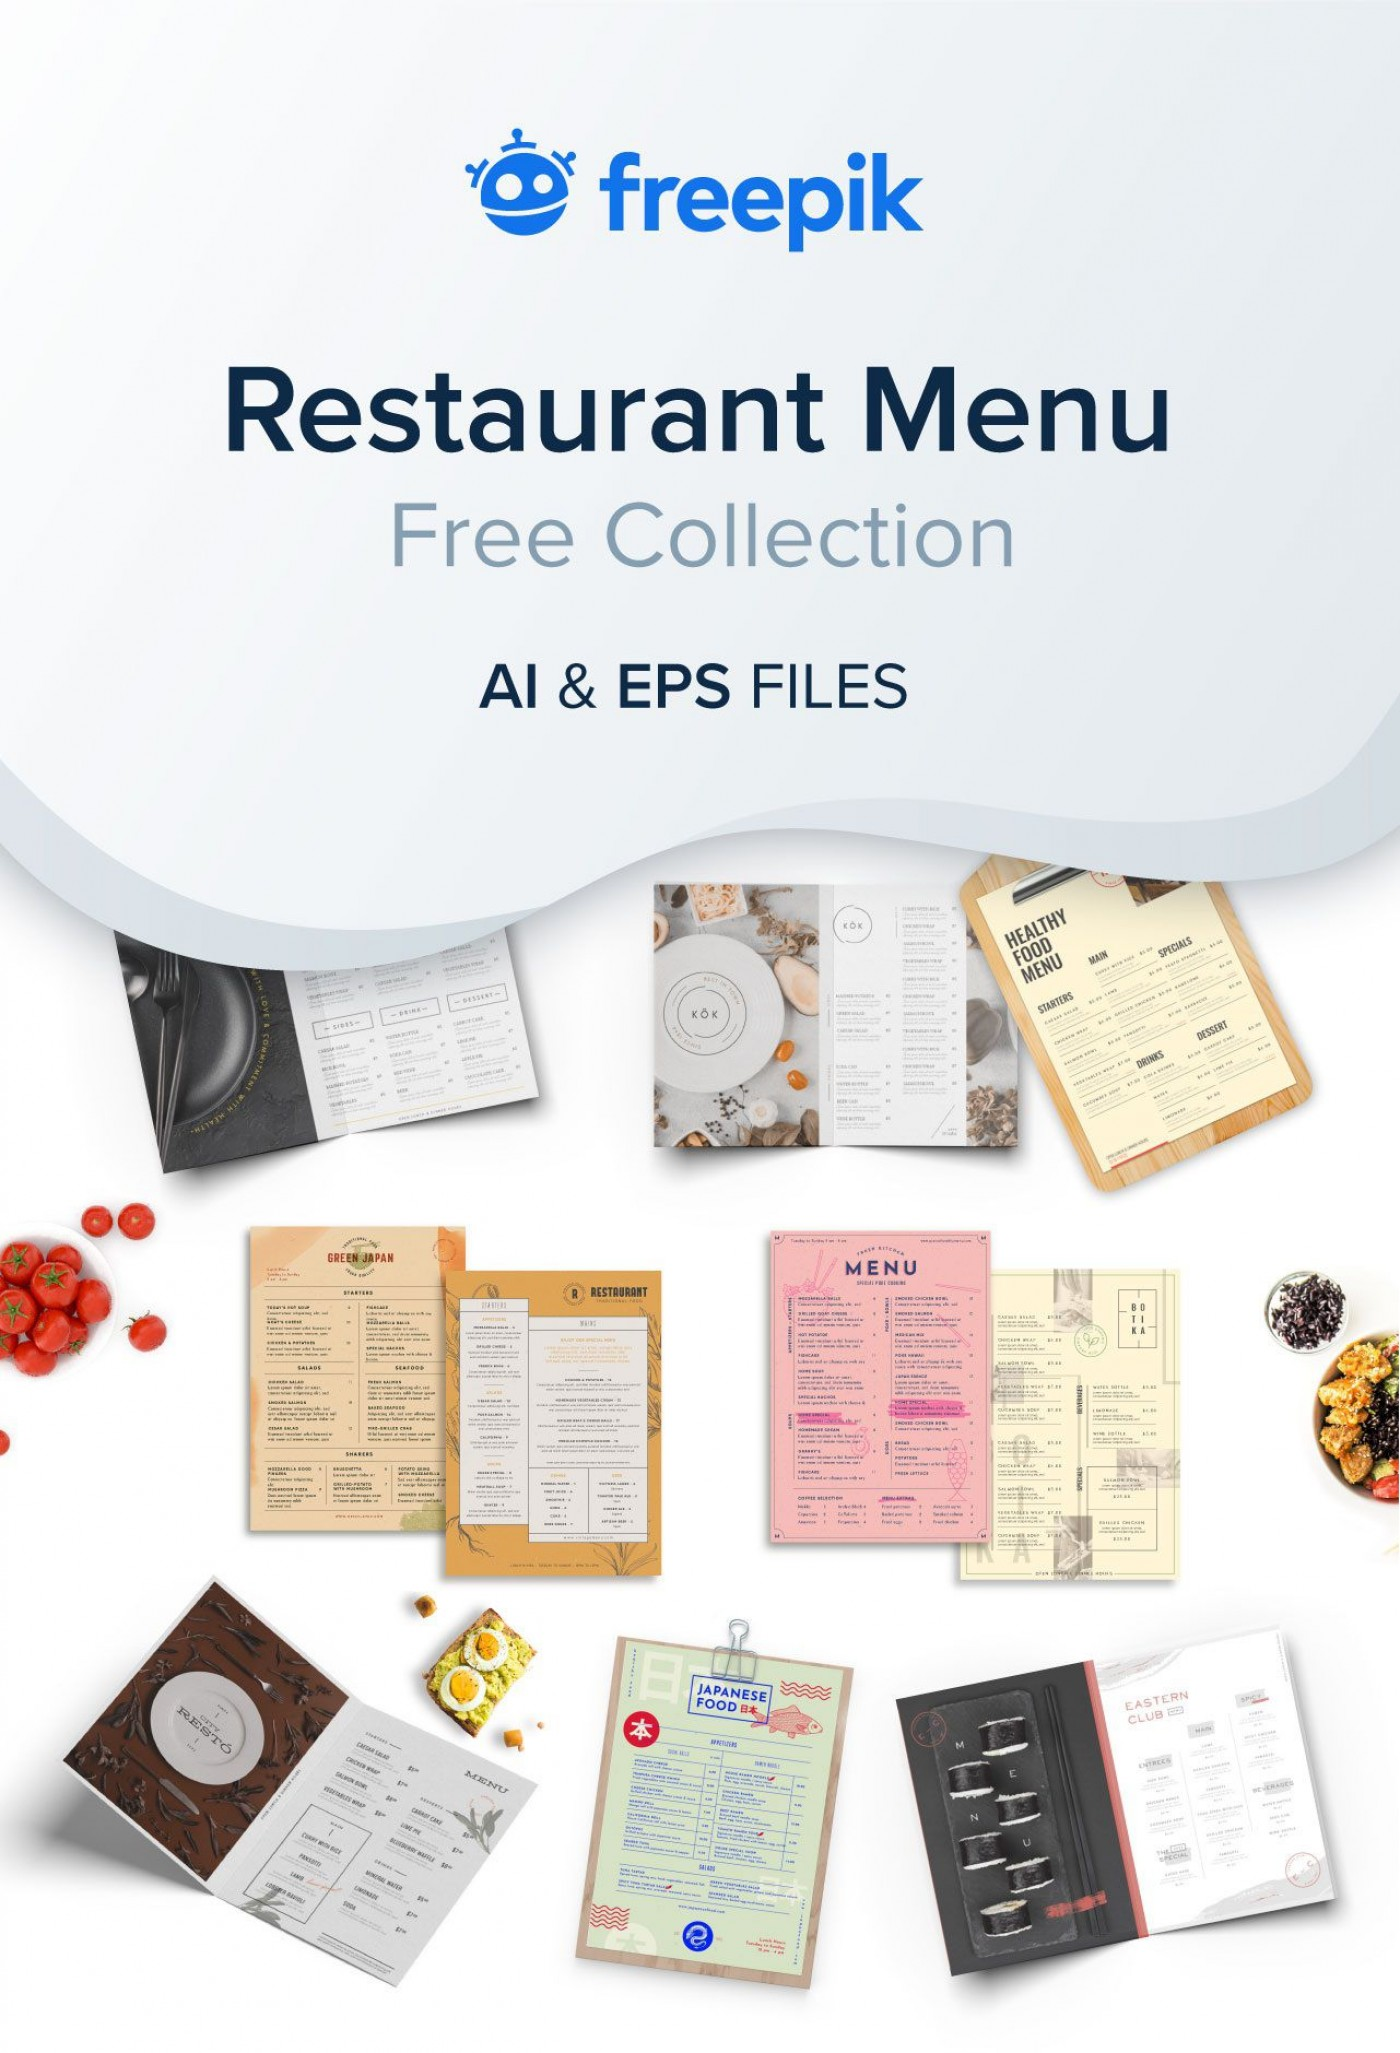 007 Outstanding Free Menu Template Download Example  Beauty Parlour Card Html Design Restaurant1400